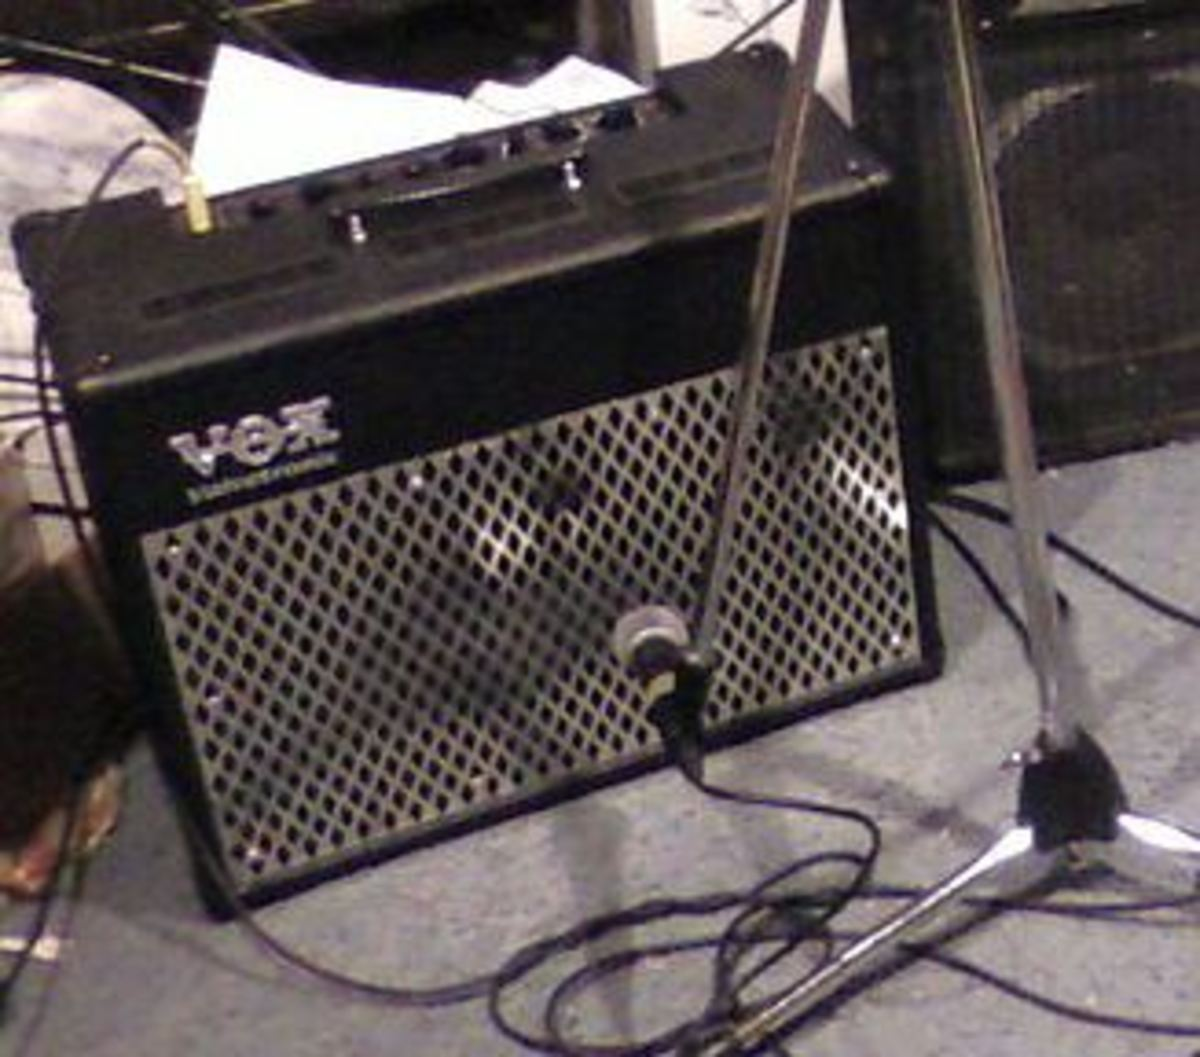 The back of the Vox AD50VT provides access to an external speaker output, as well as a wattage control that functions like an attentuator on a tube amp.